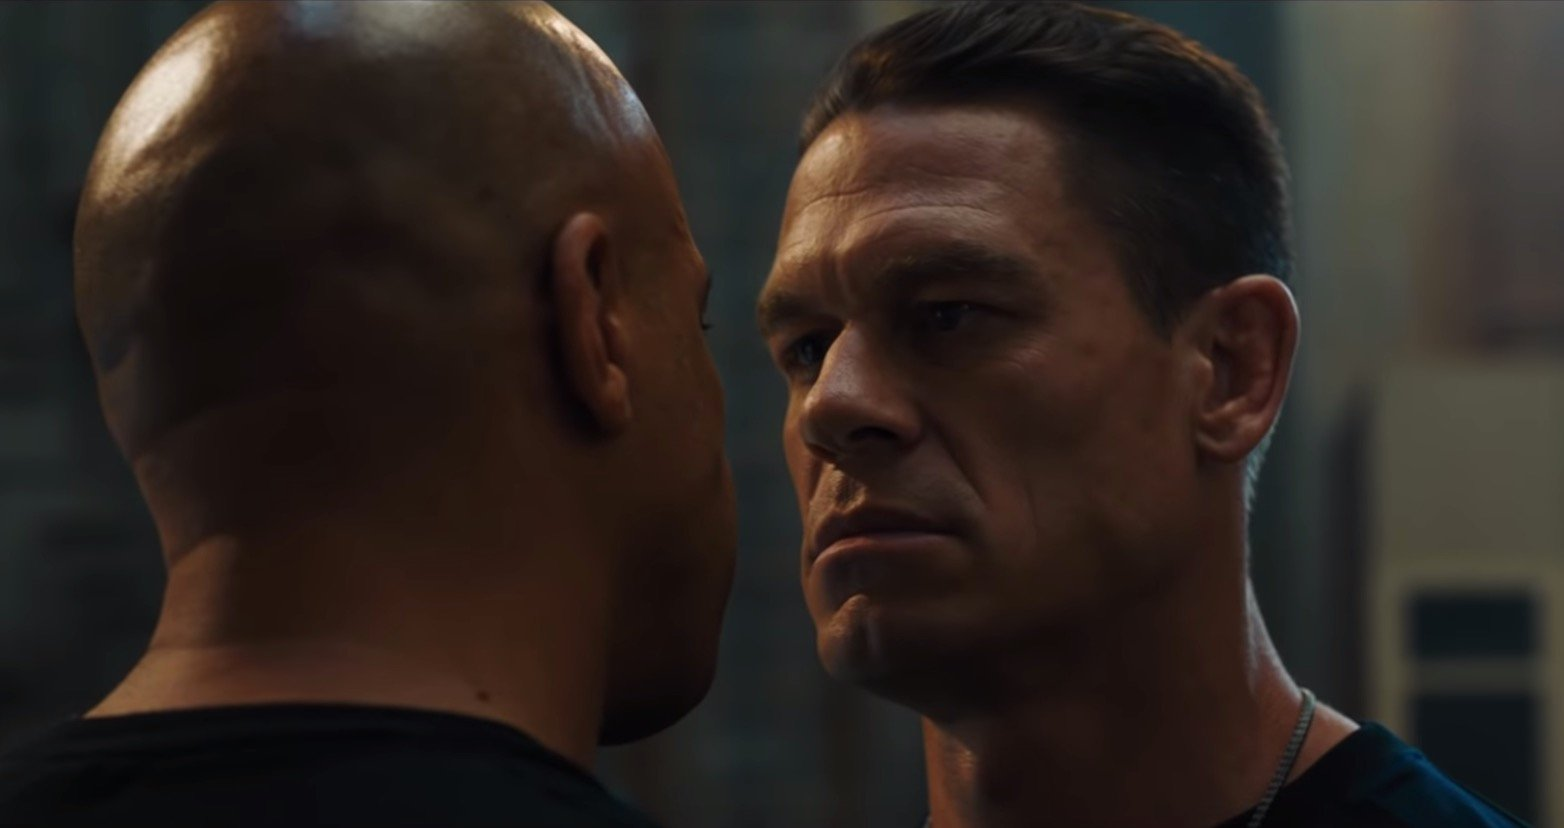 A Character Returns From The Dead In The 'Fast And Furious 9' Trailer